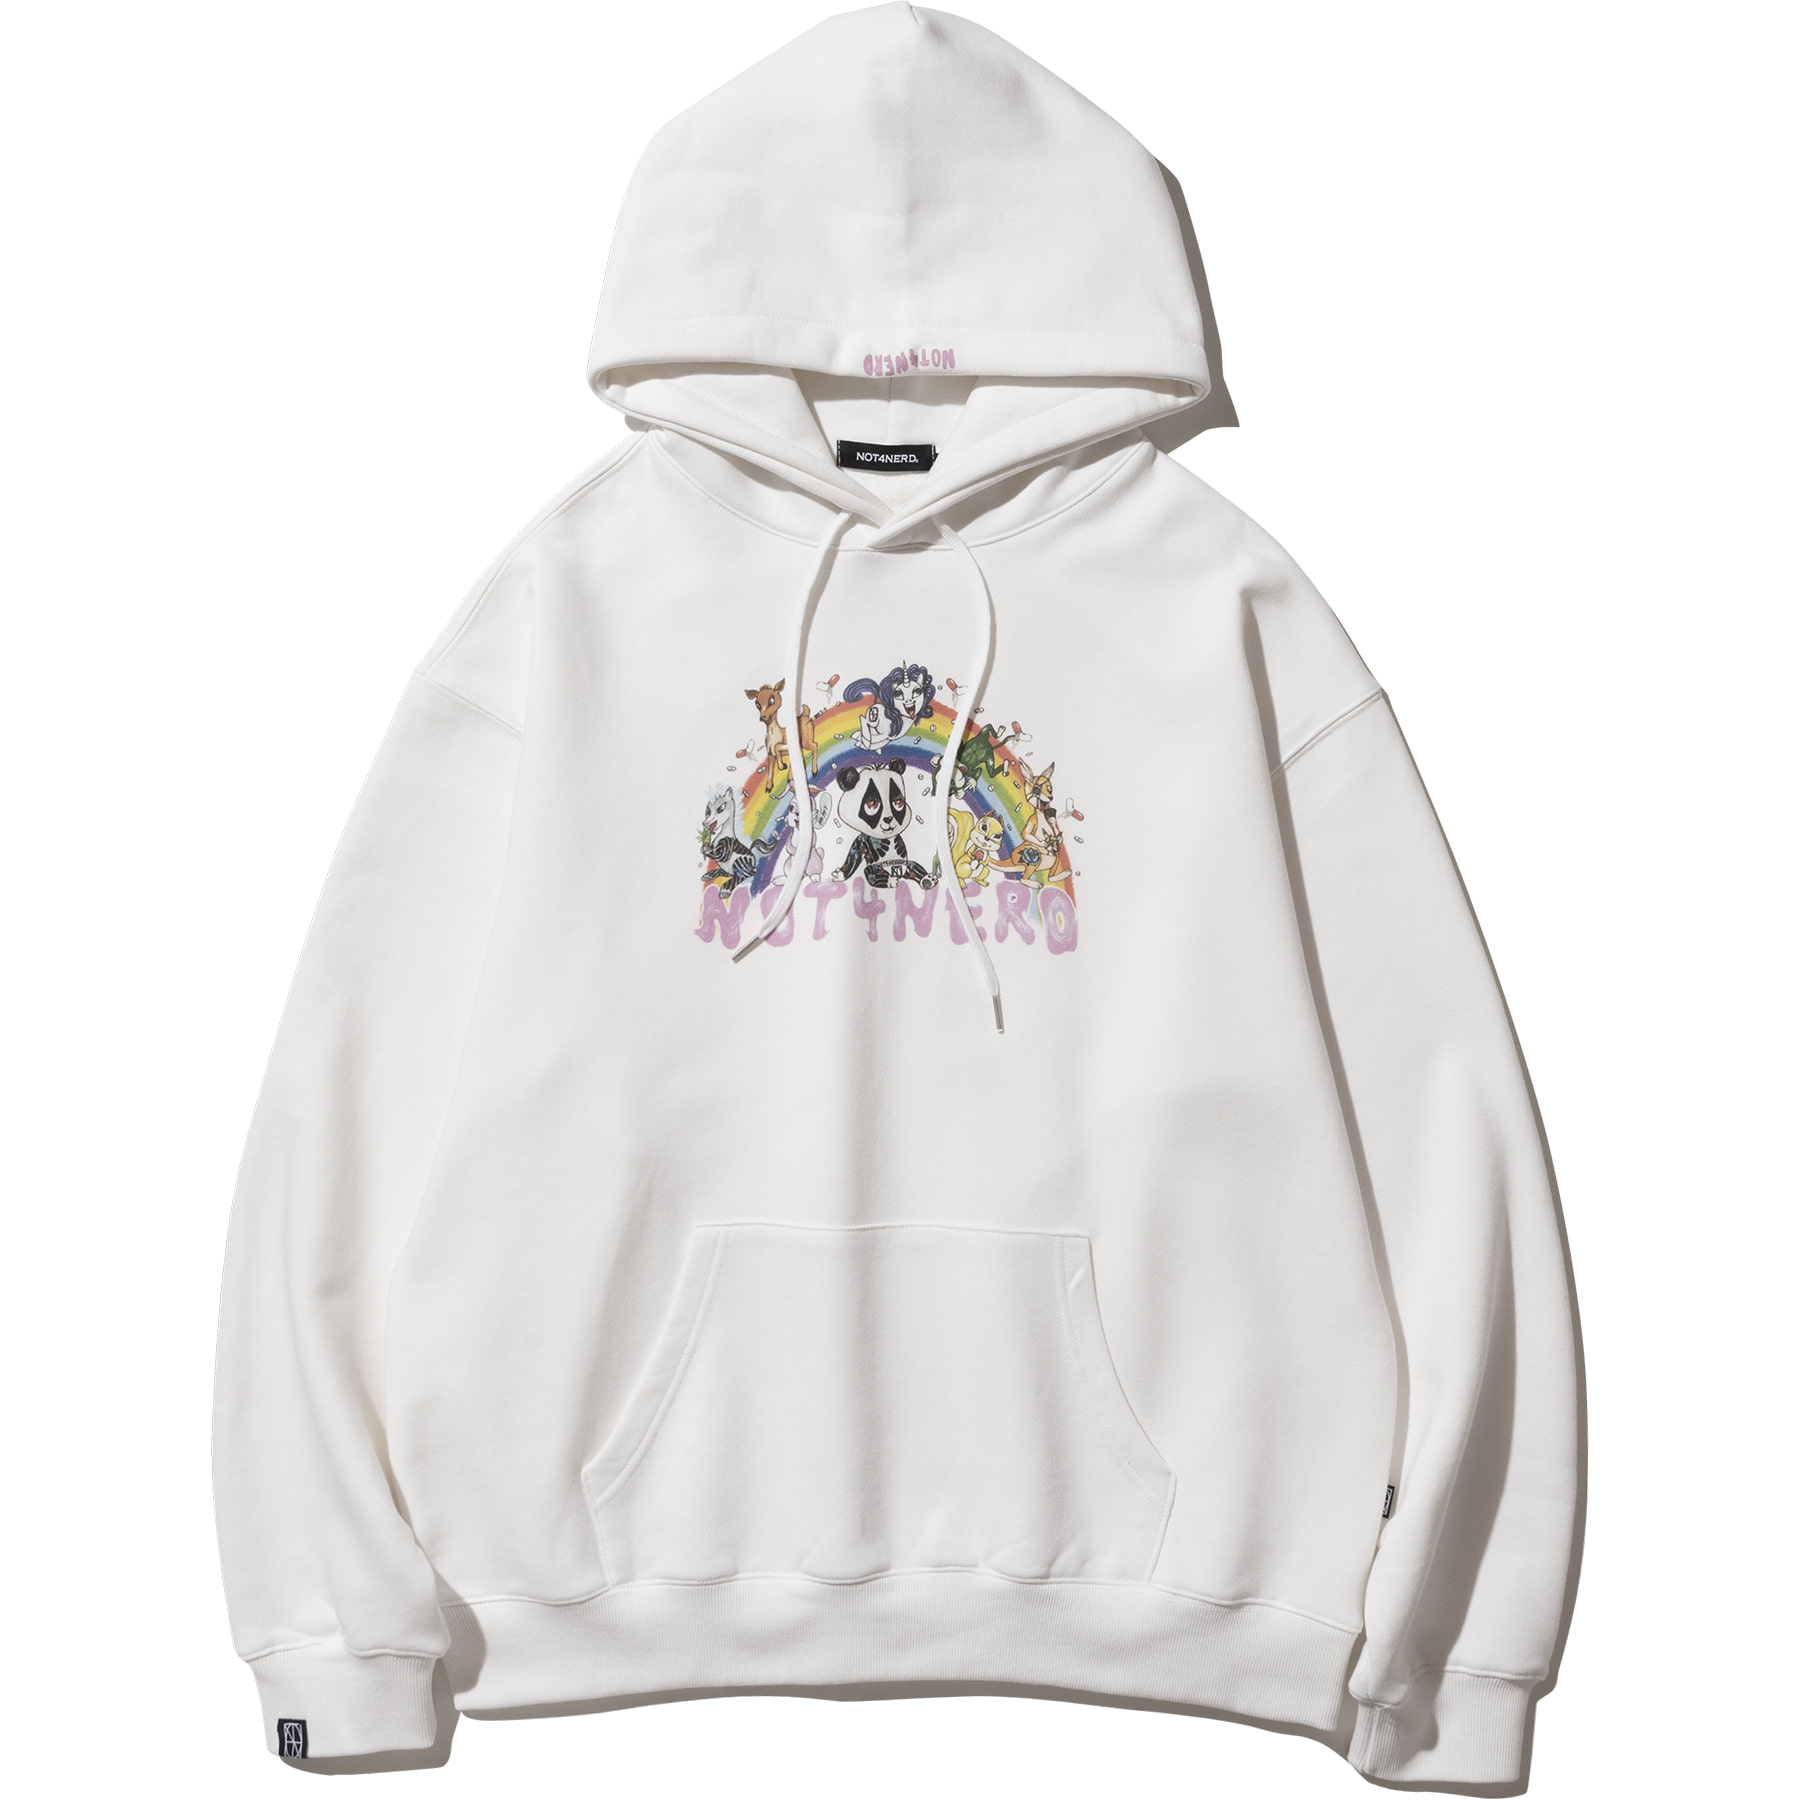 Pony Land Pullover Hood - Ivory,NOT4NERD